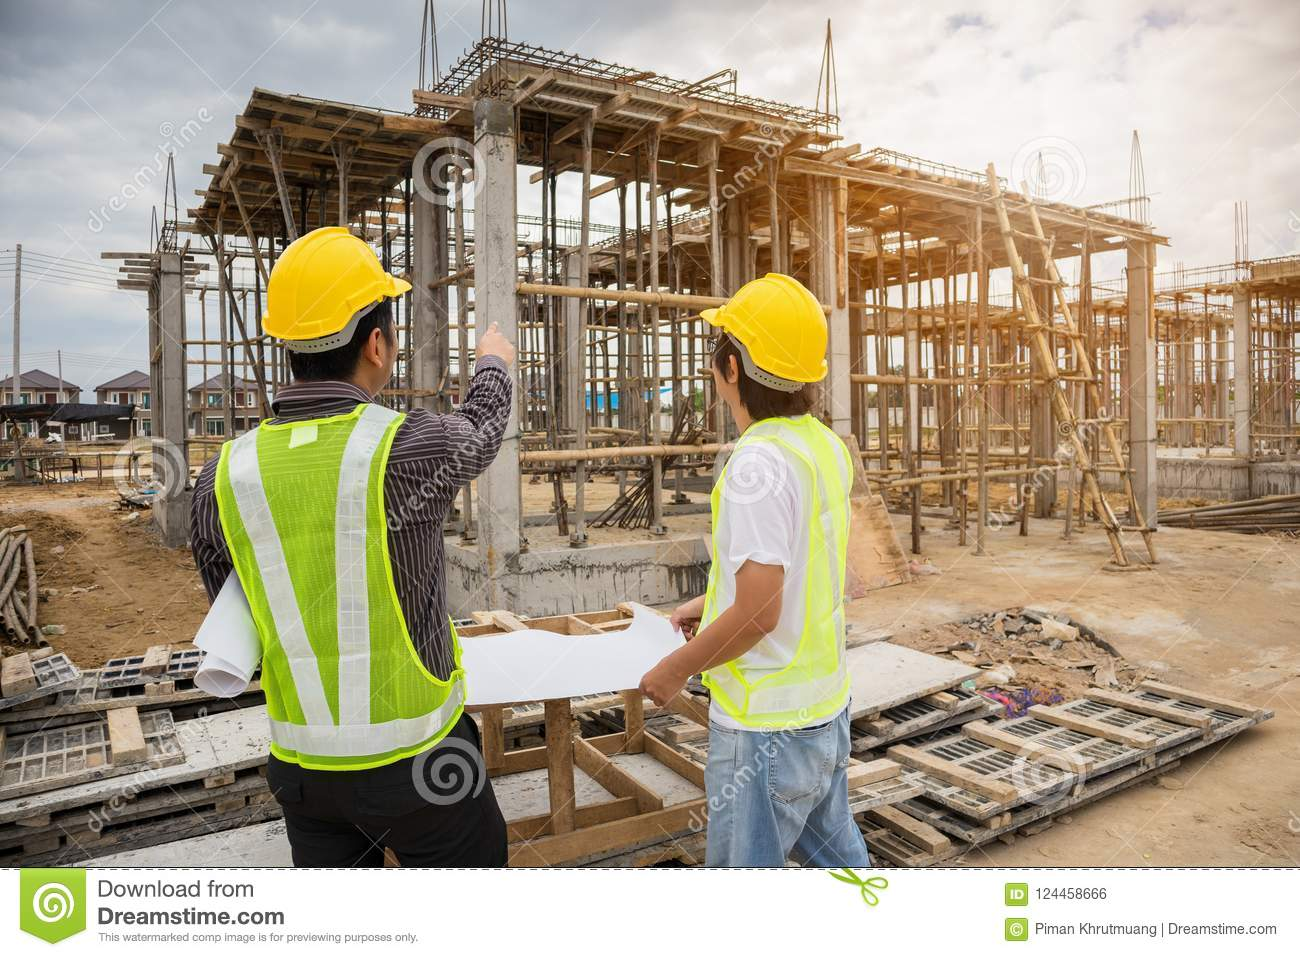 Construction Engineering Building And Asian Business Man Construction Engineer Workers At Building Site